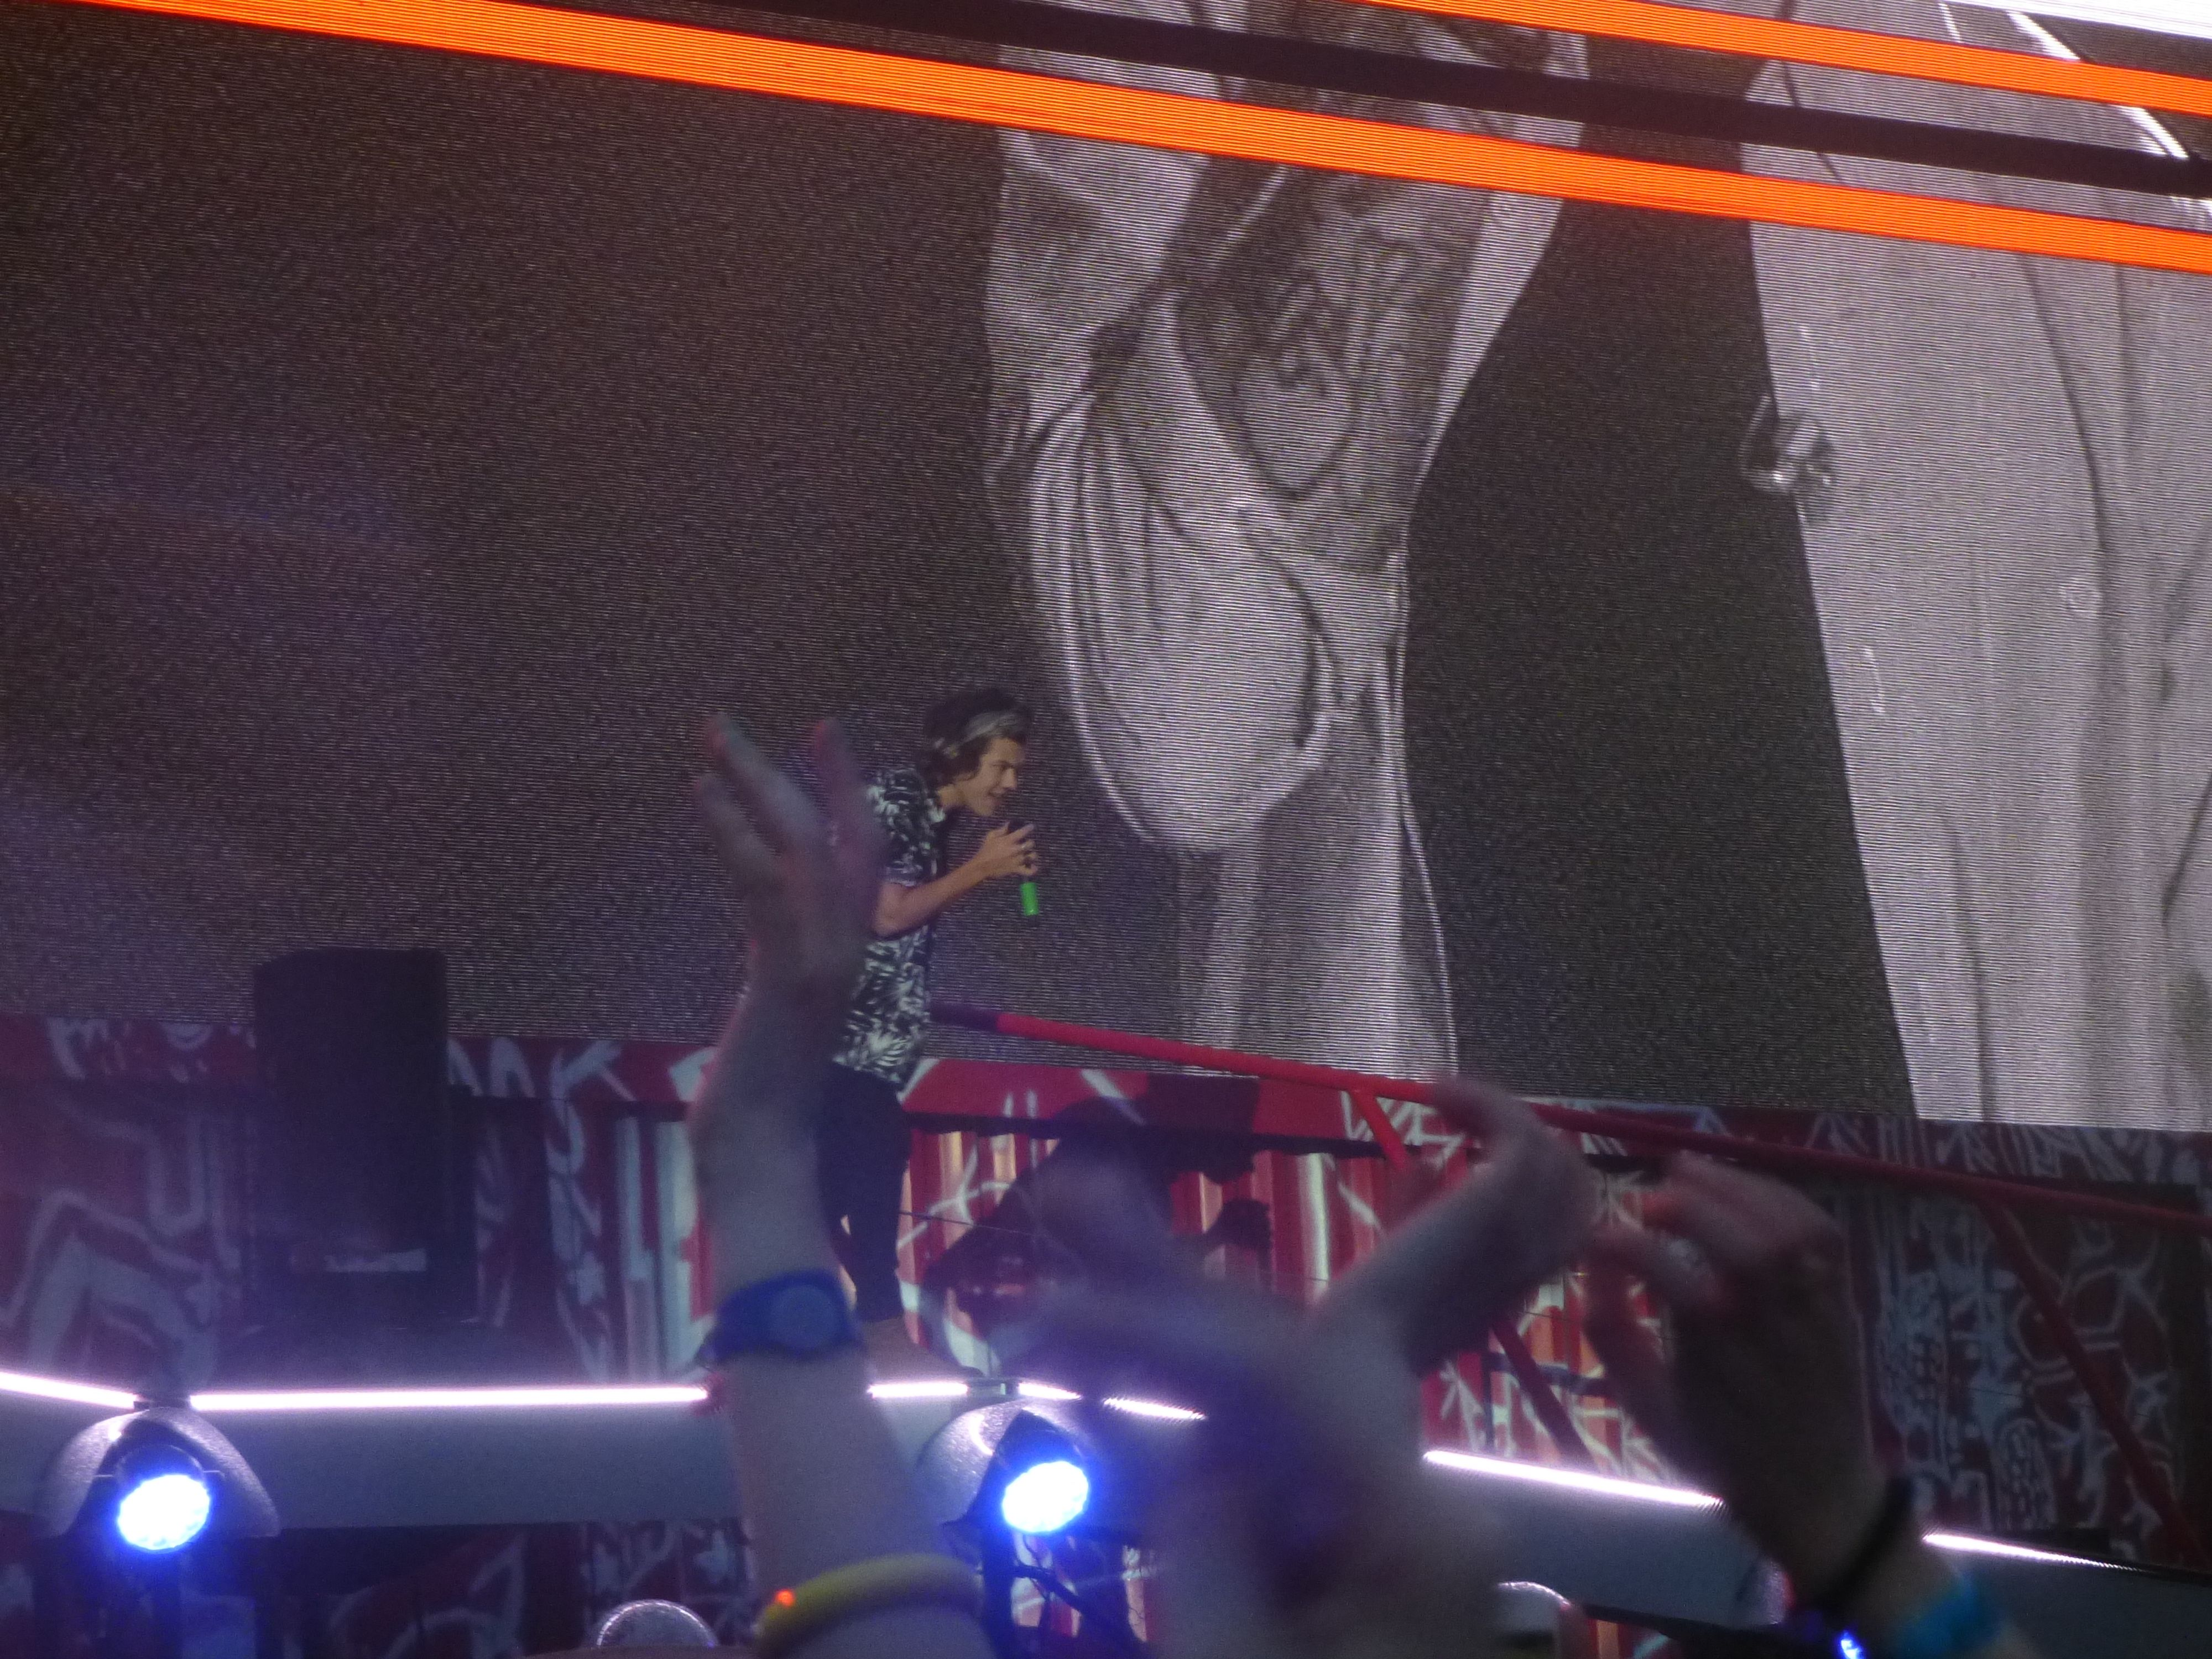 Harry on stage and Zayn on the big screen in Croker